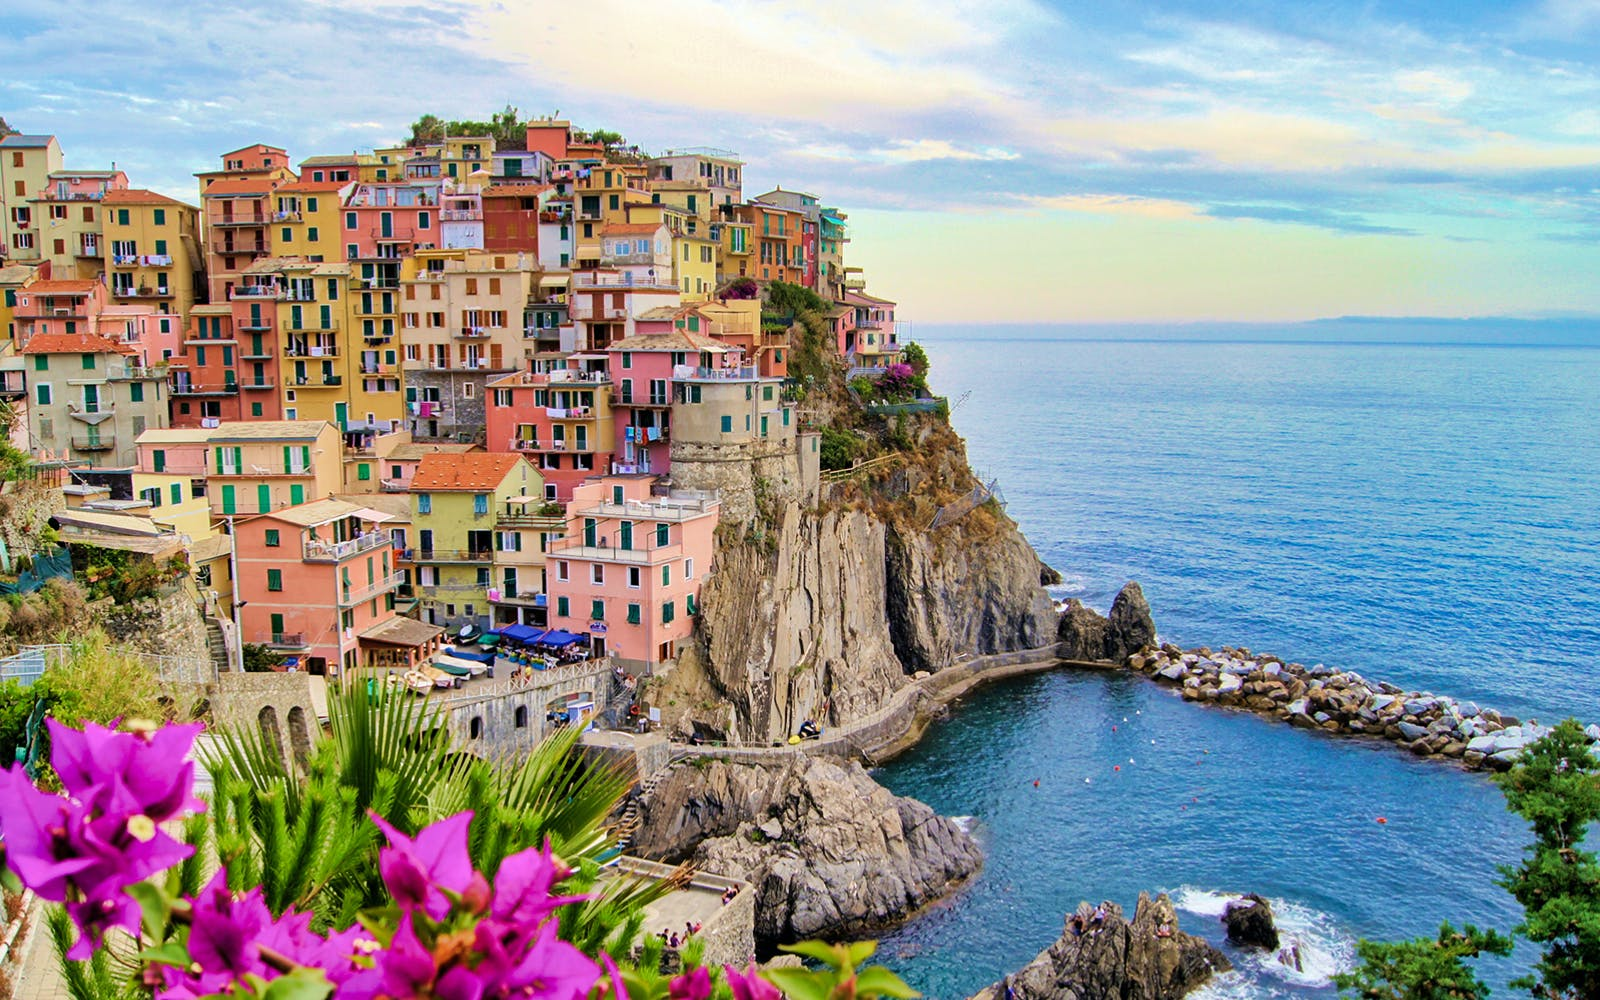 Escorted Full Day Tour of Cinque Terre from Florence